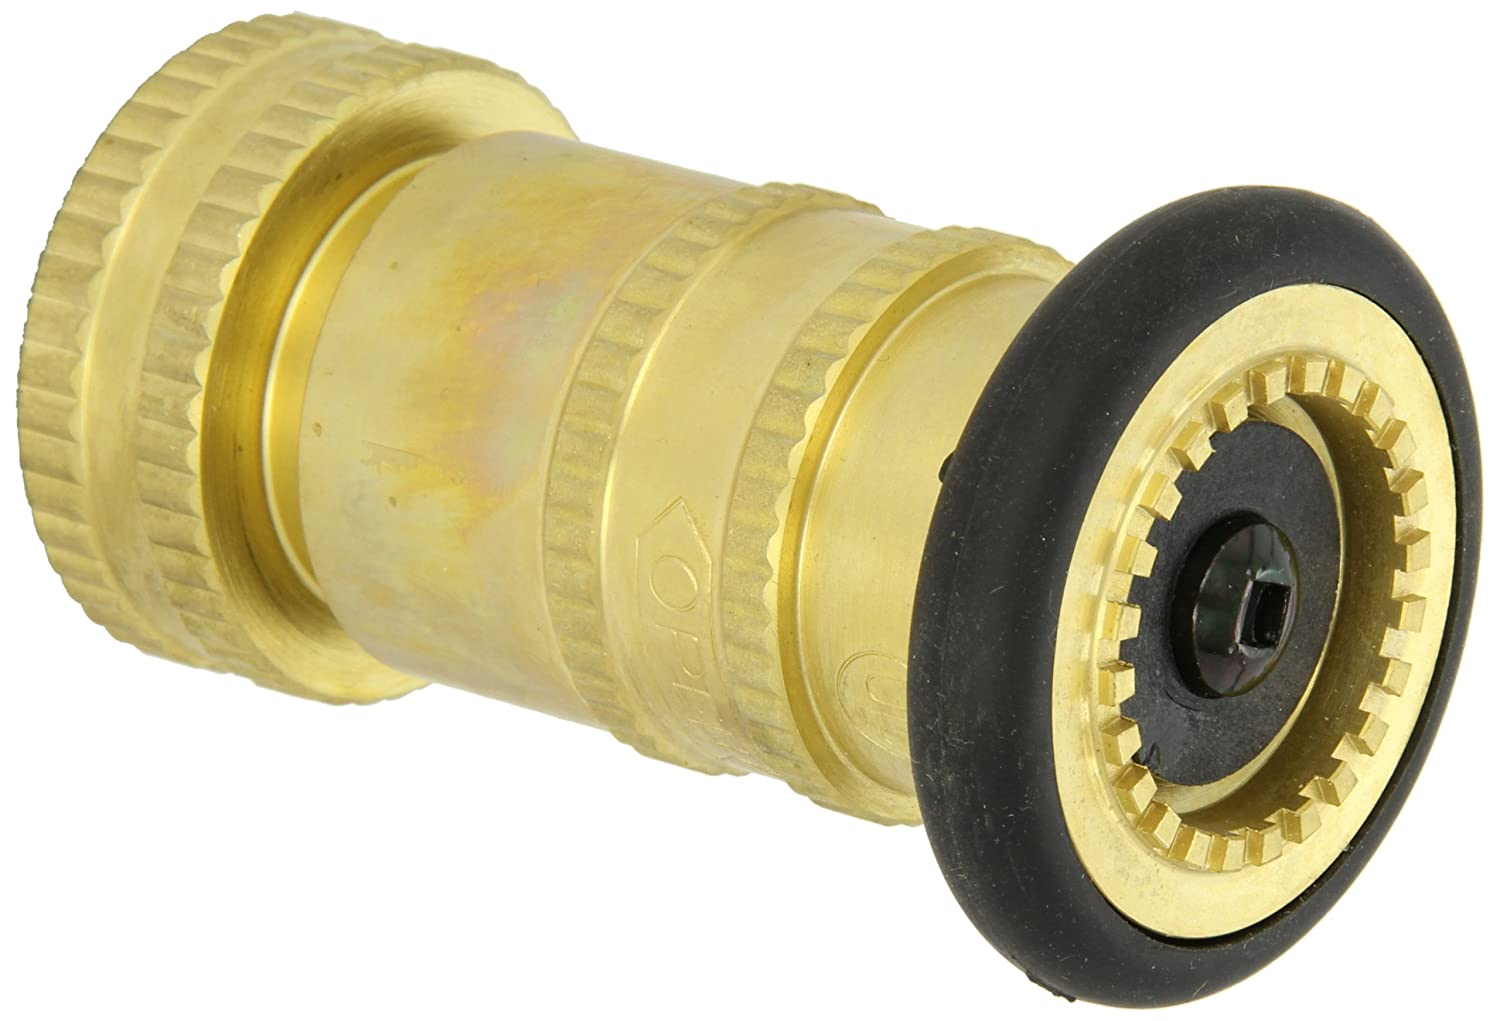 Moon 7171-1521 Brass Fire Hose Nozzle gpm Fog 1 Fort Worth Mall Industrial 85 New product